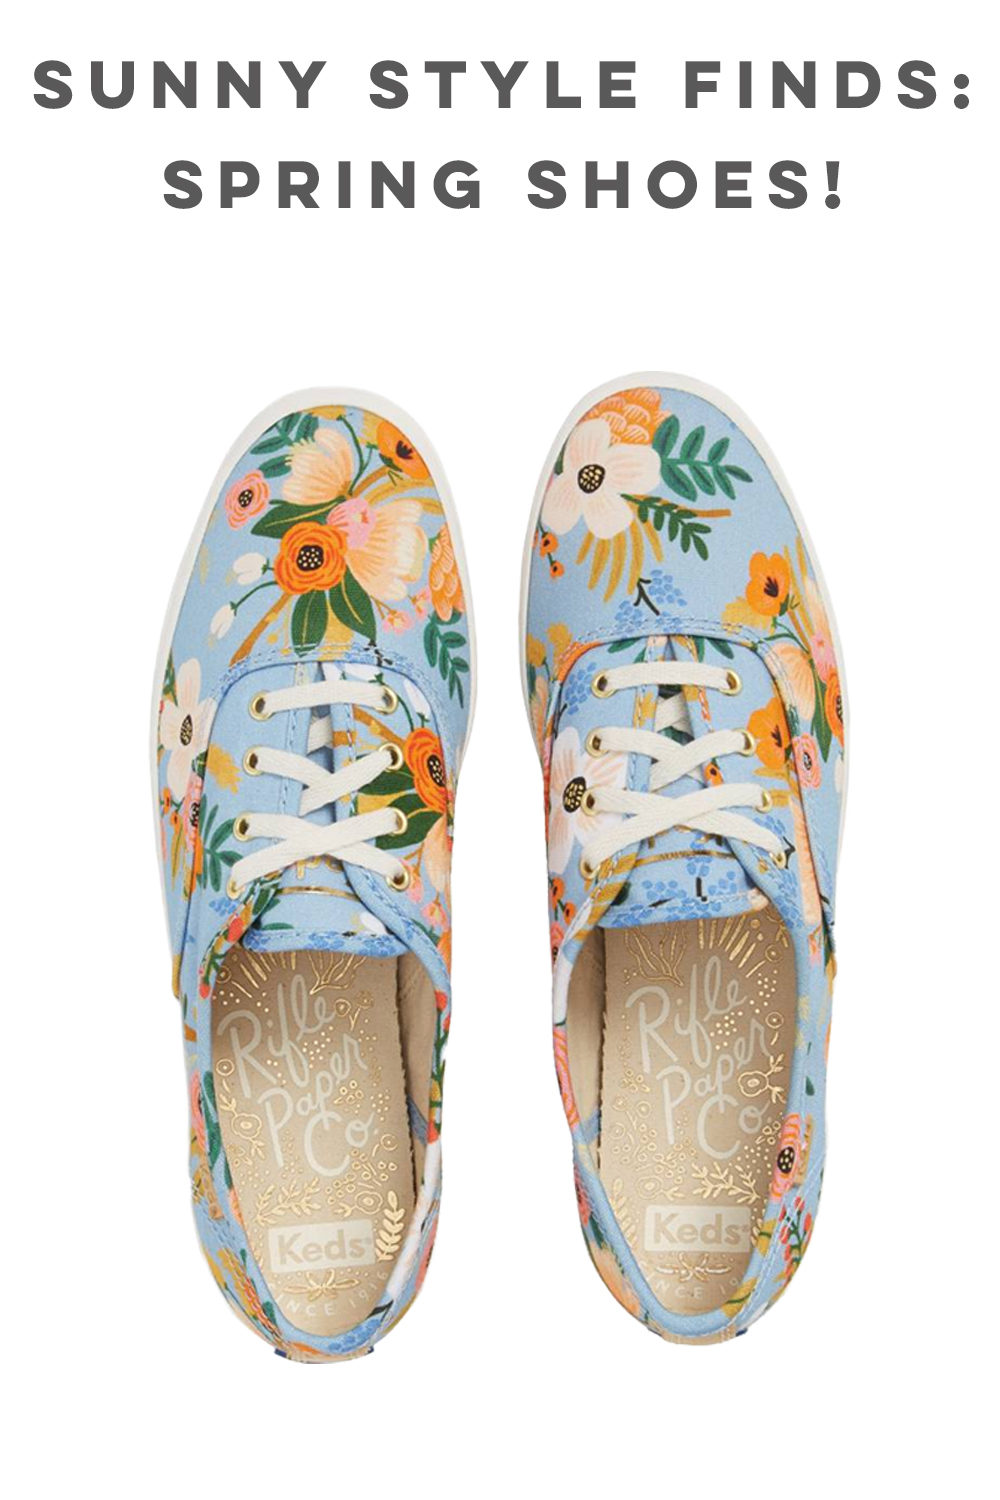 Shoes for Spring and Summer: Rifle Paper Co. X Keds